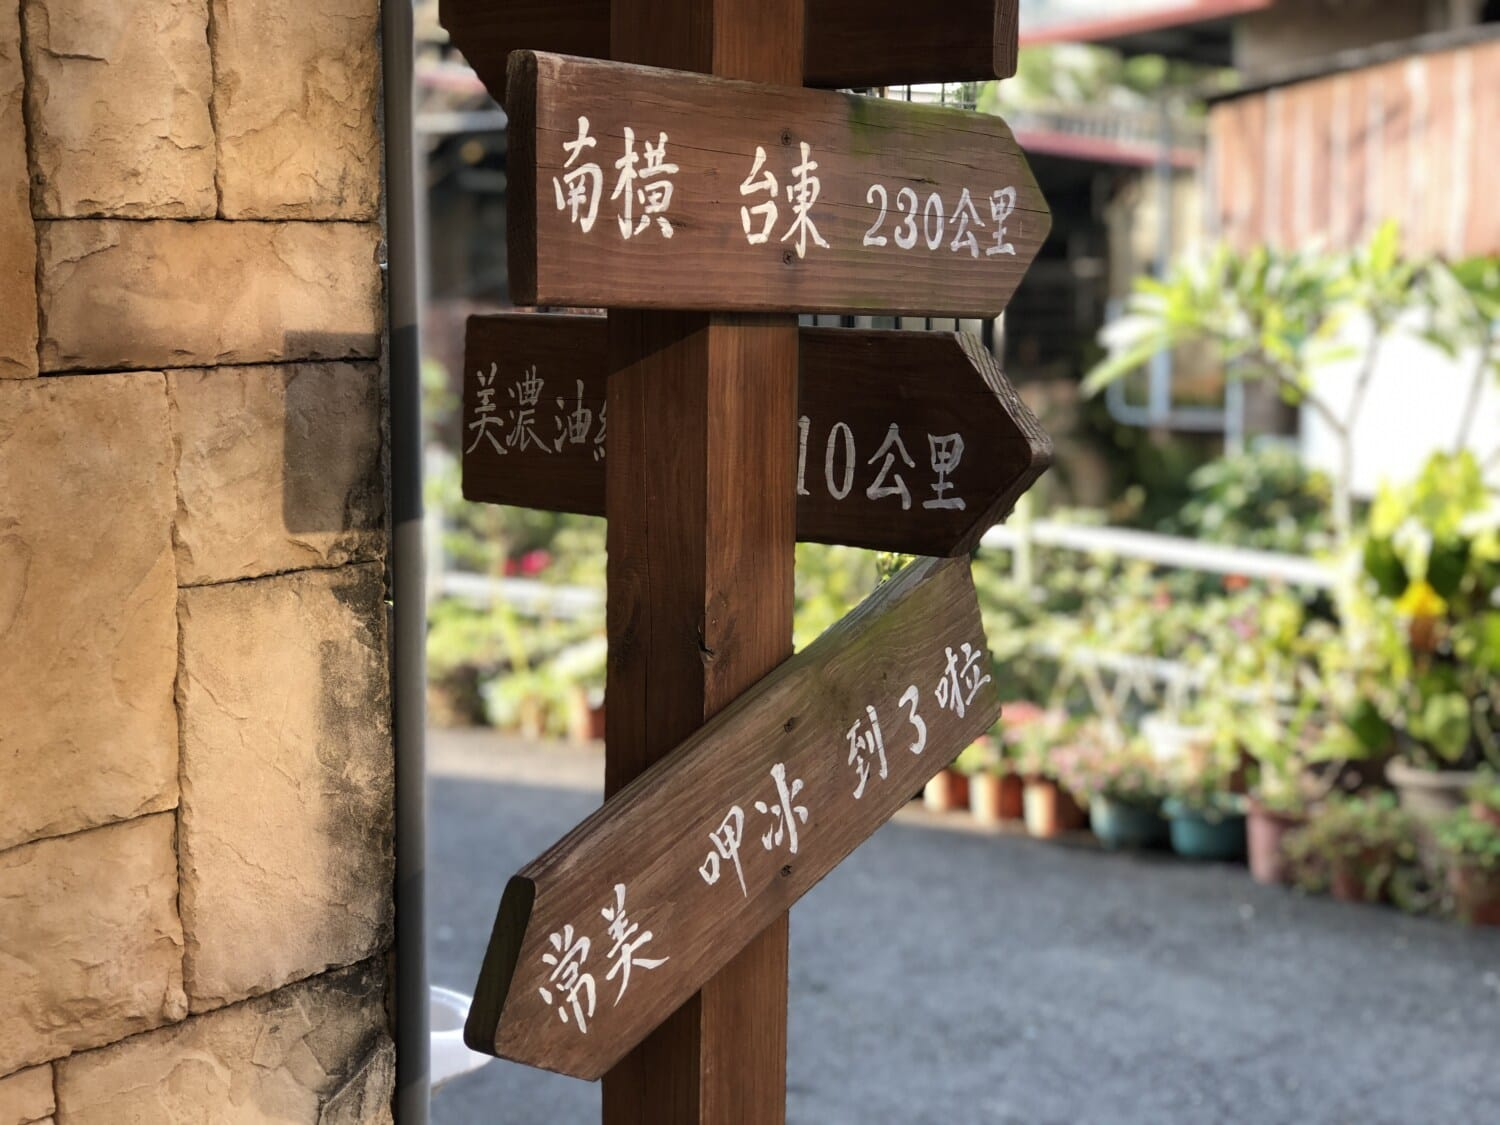 symbol, street, corner, direction, way, message, wooden, arrow, outdoors, traditional